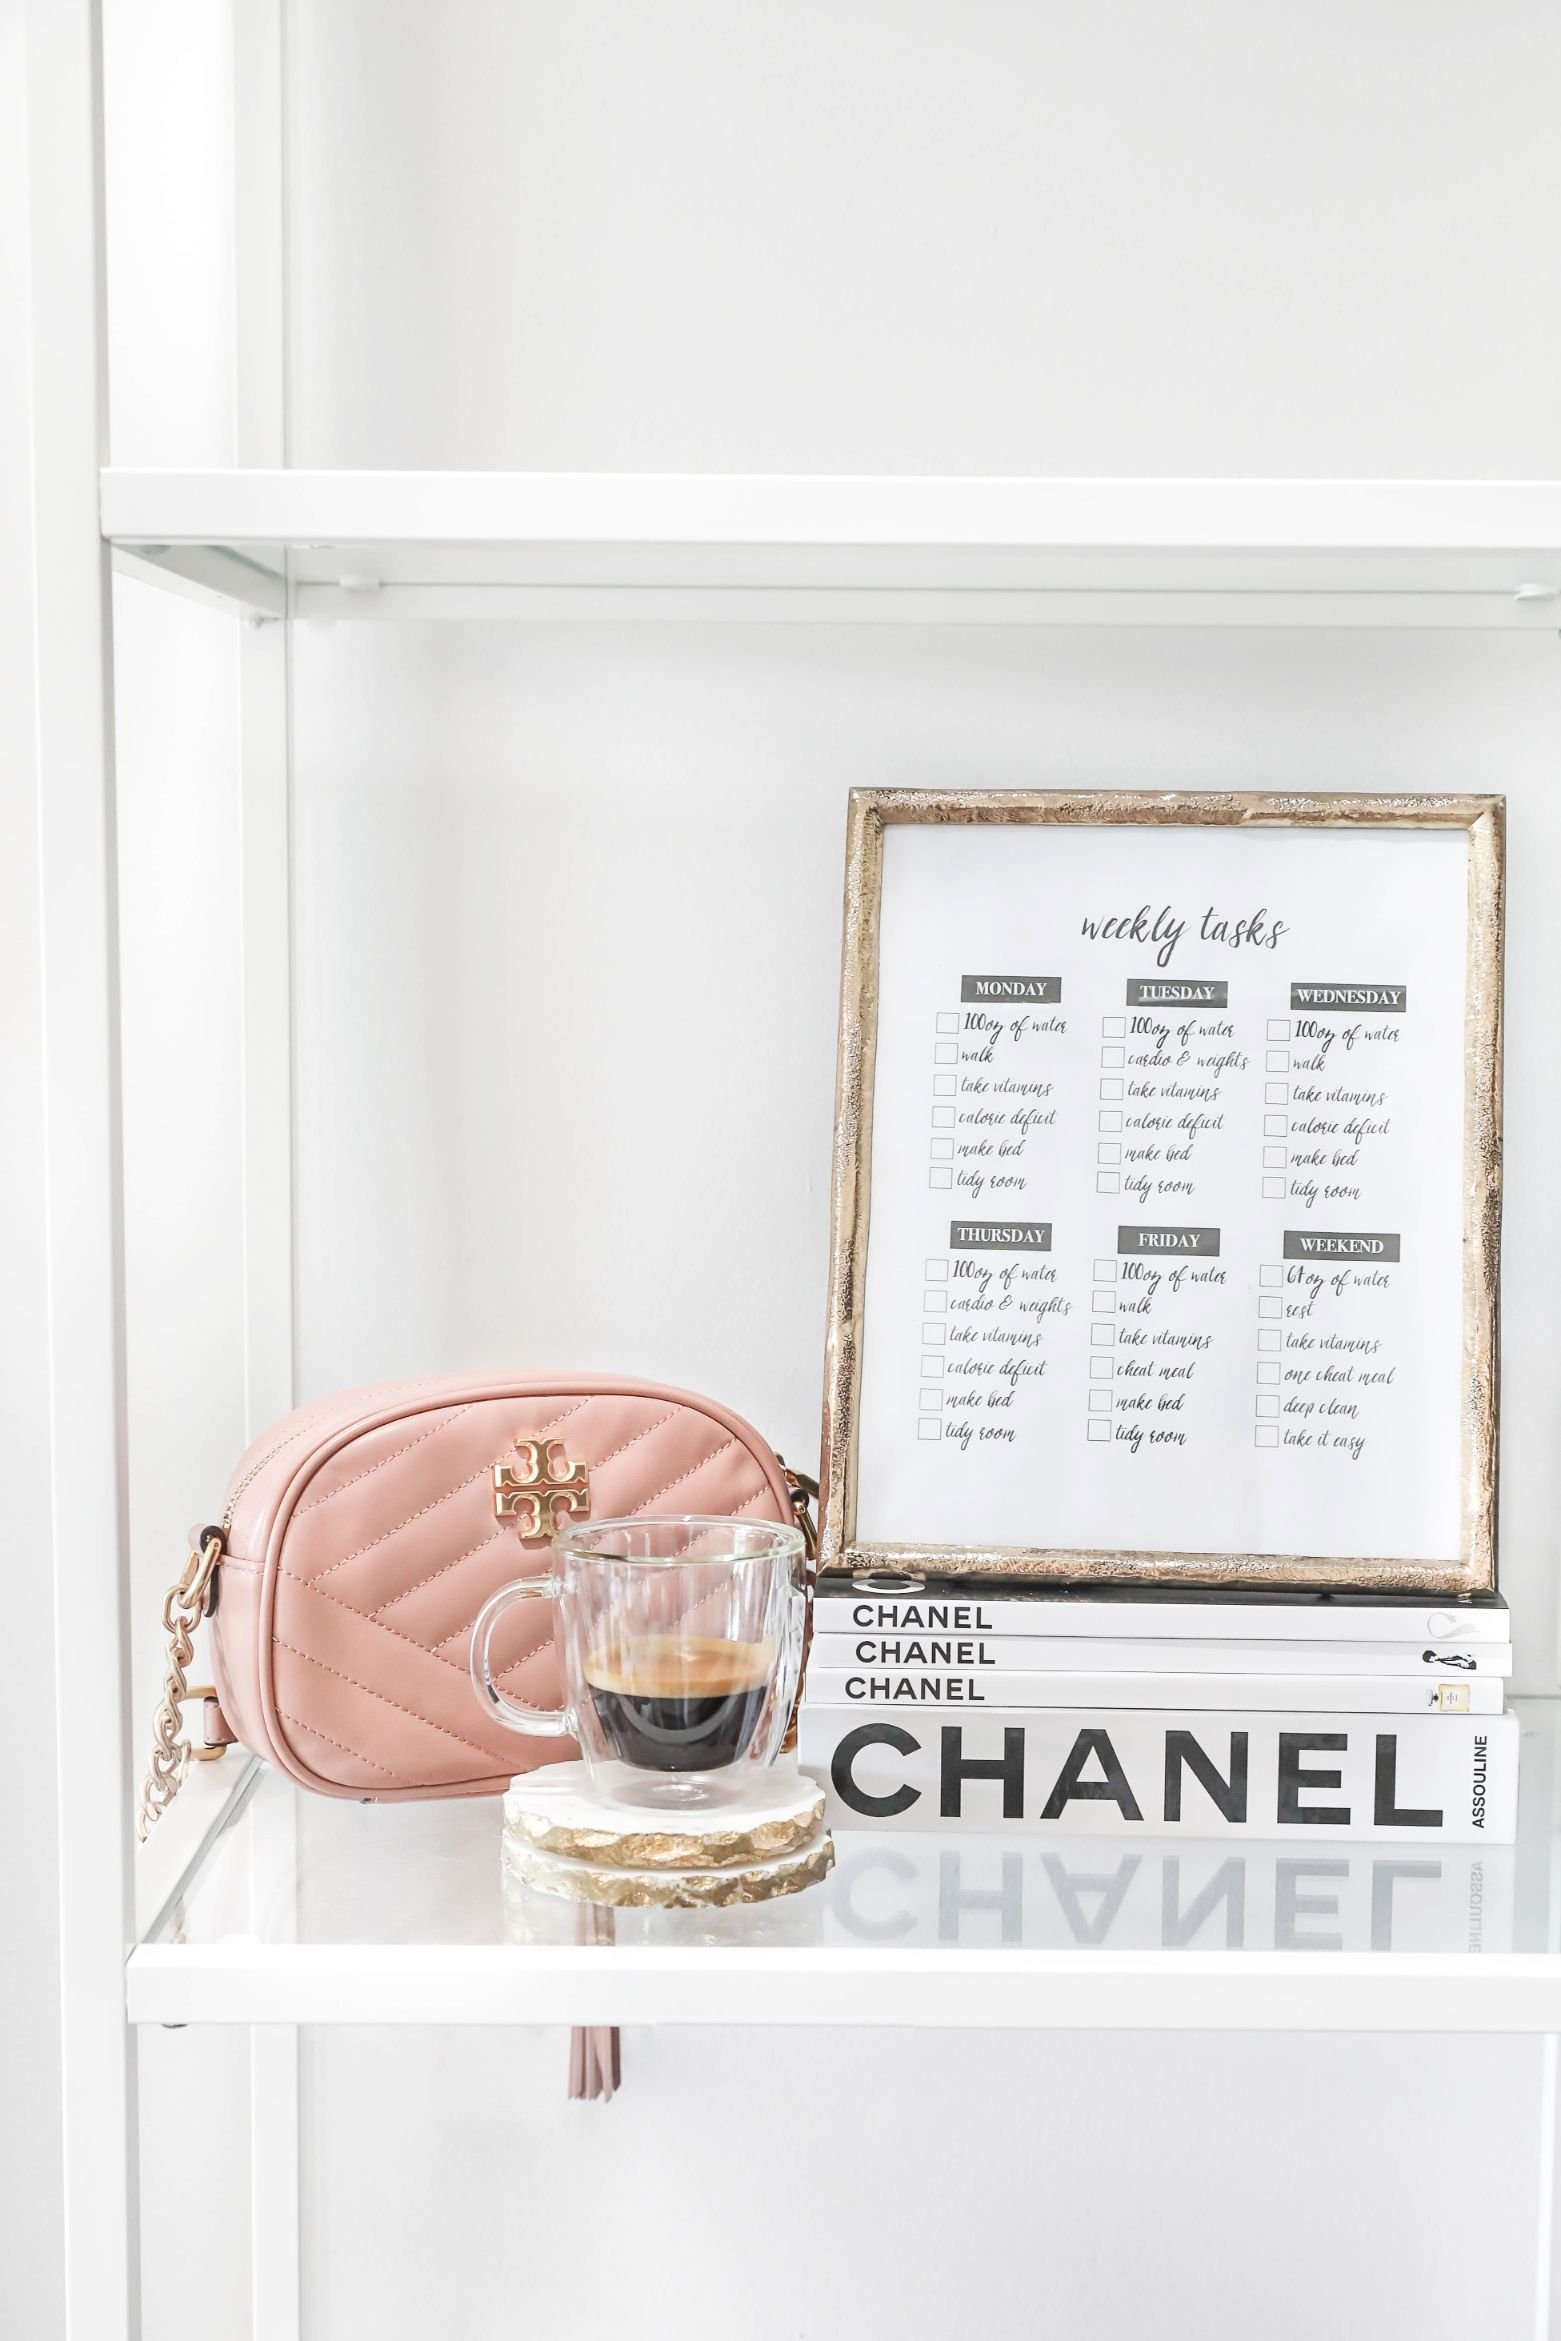 Weekly goals template daily tasks chanel organization boss babe girl fashion blog daily dose of charm